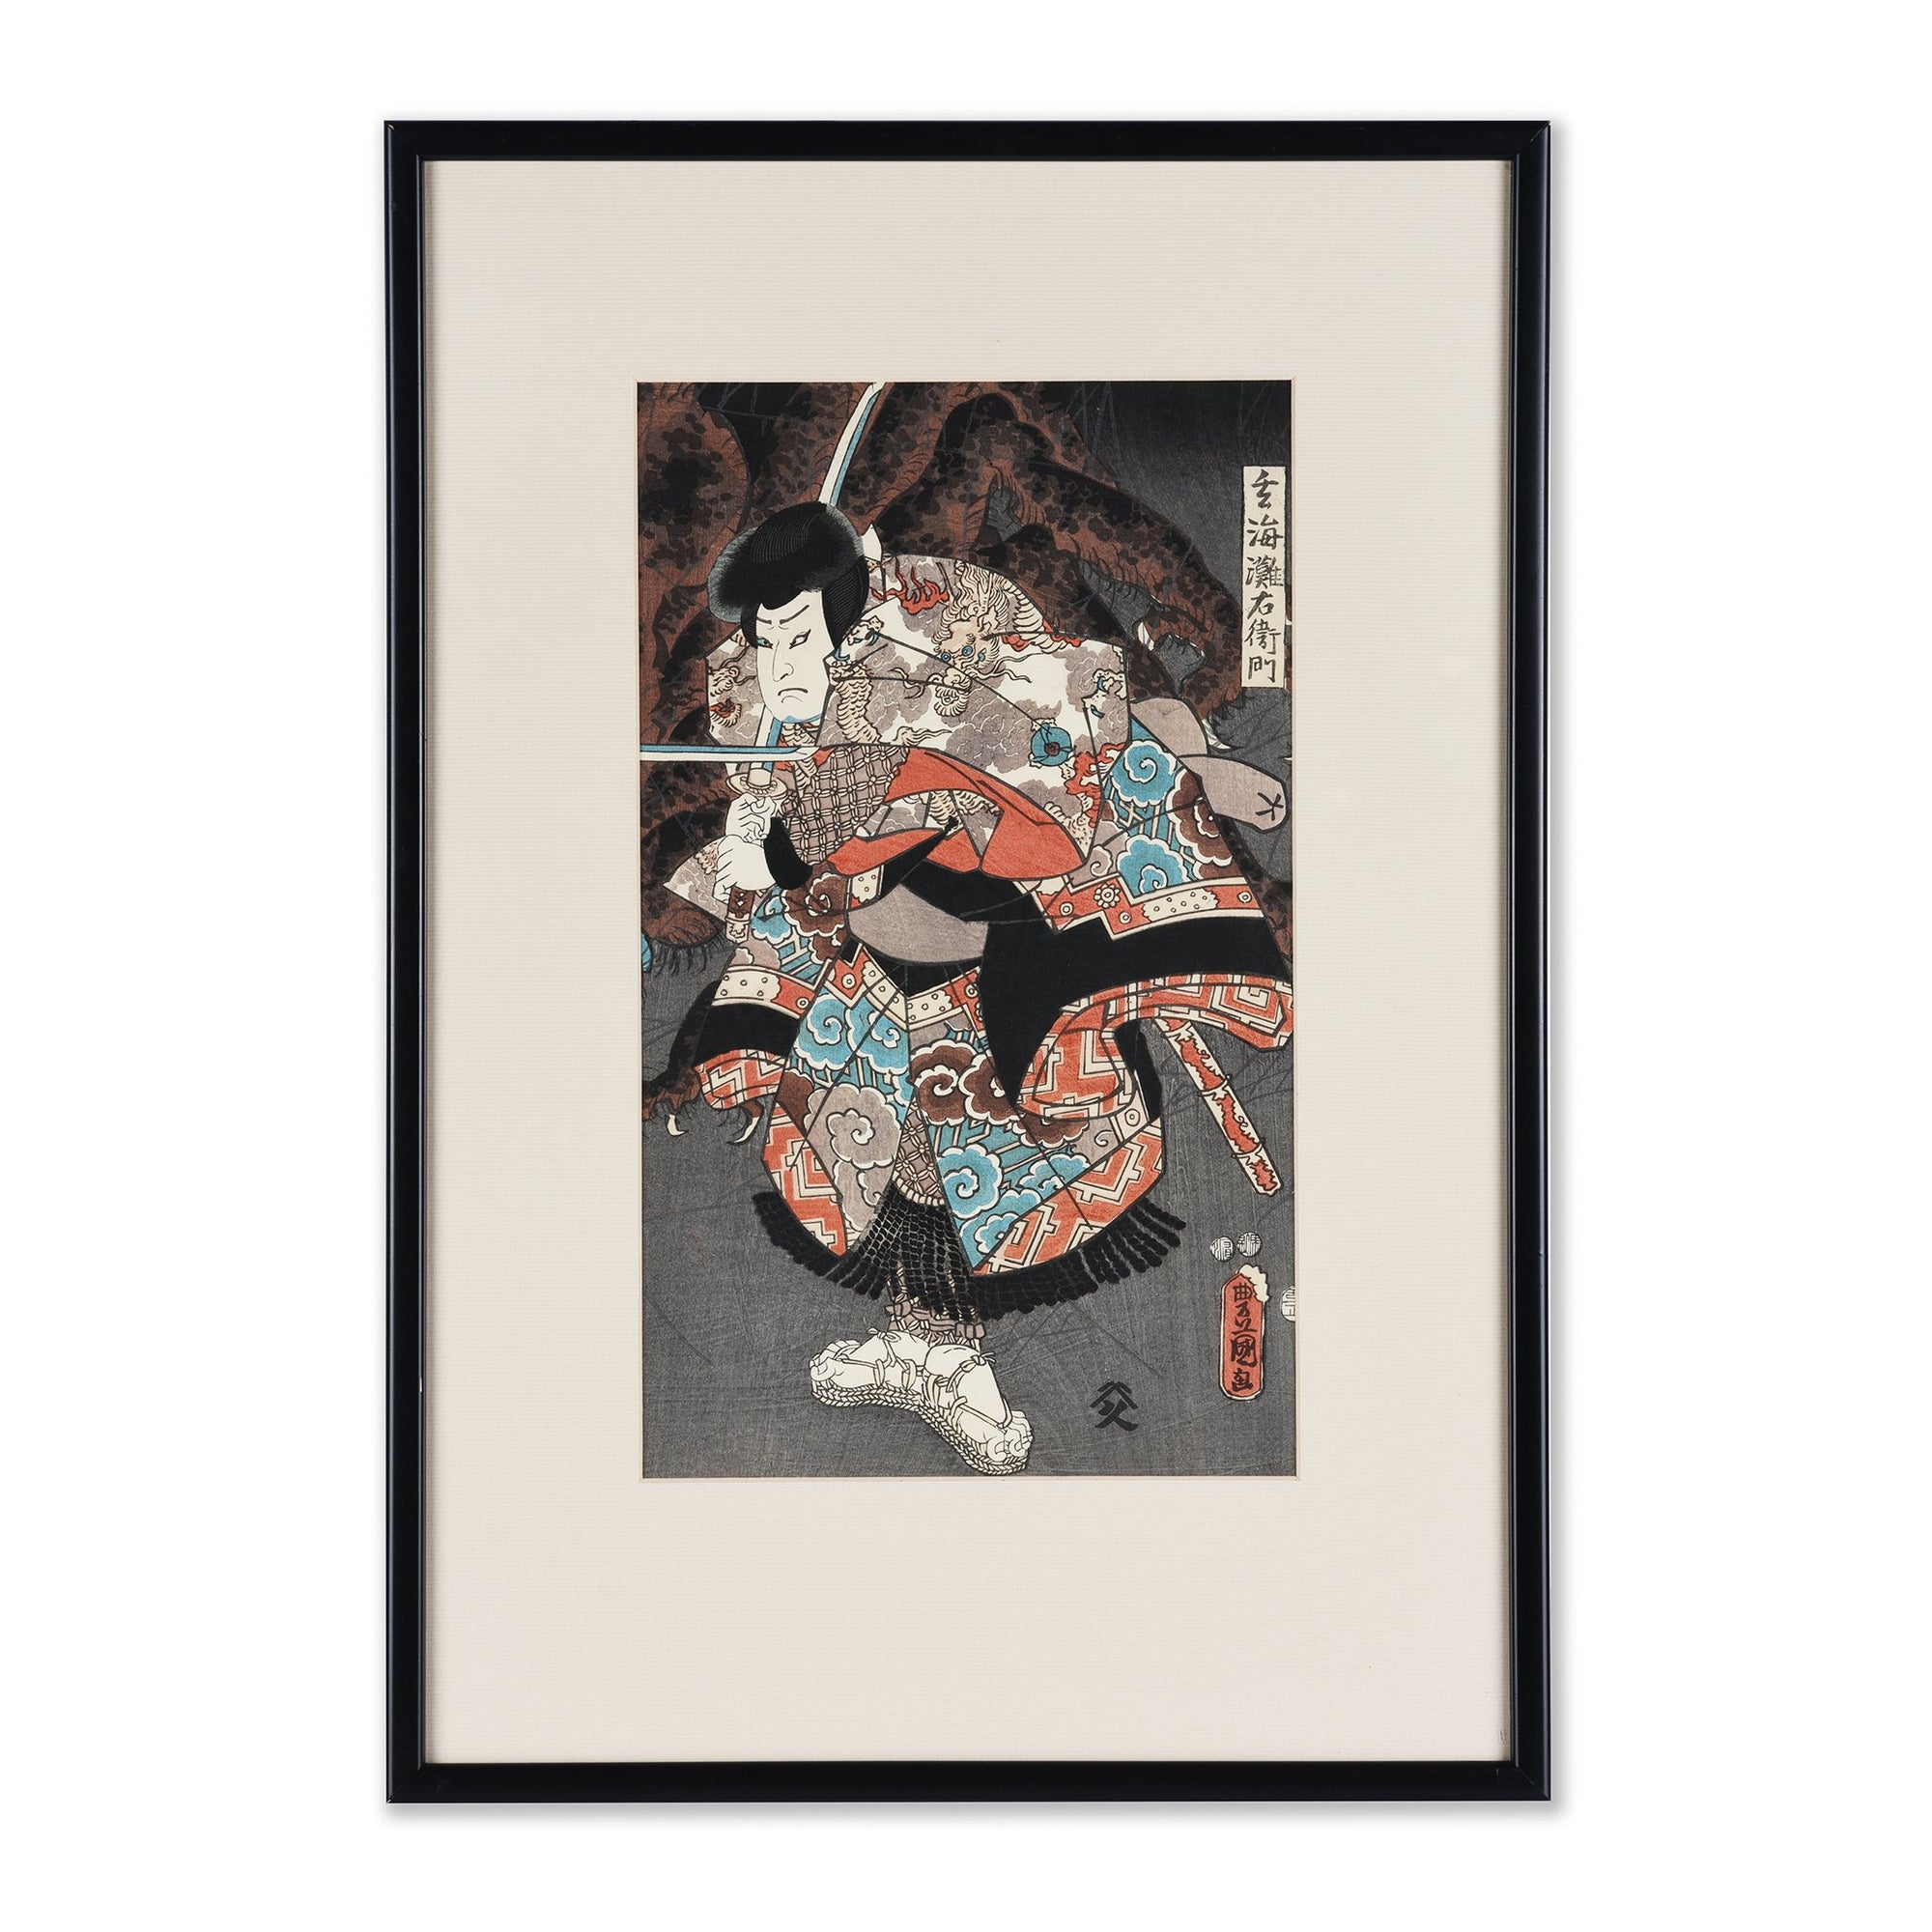 Framed Woodblock Print of a Kabuki Actor By Kunisada - 38 x 2 x 54.5 (wxdxh cms) - M353